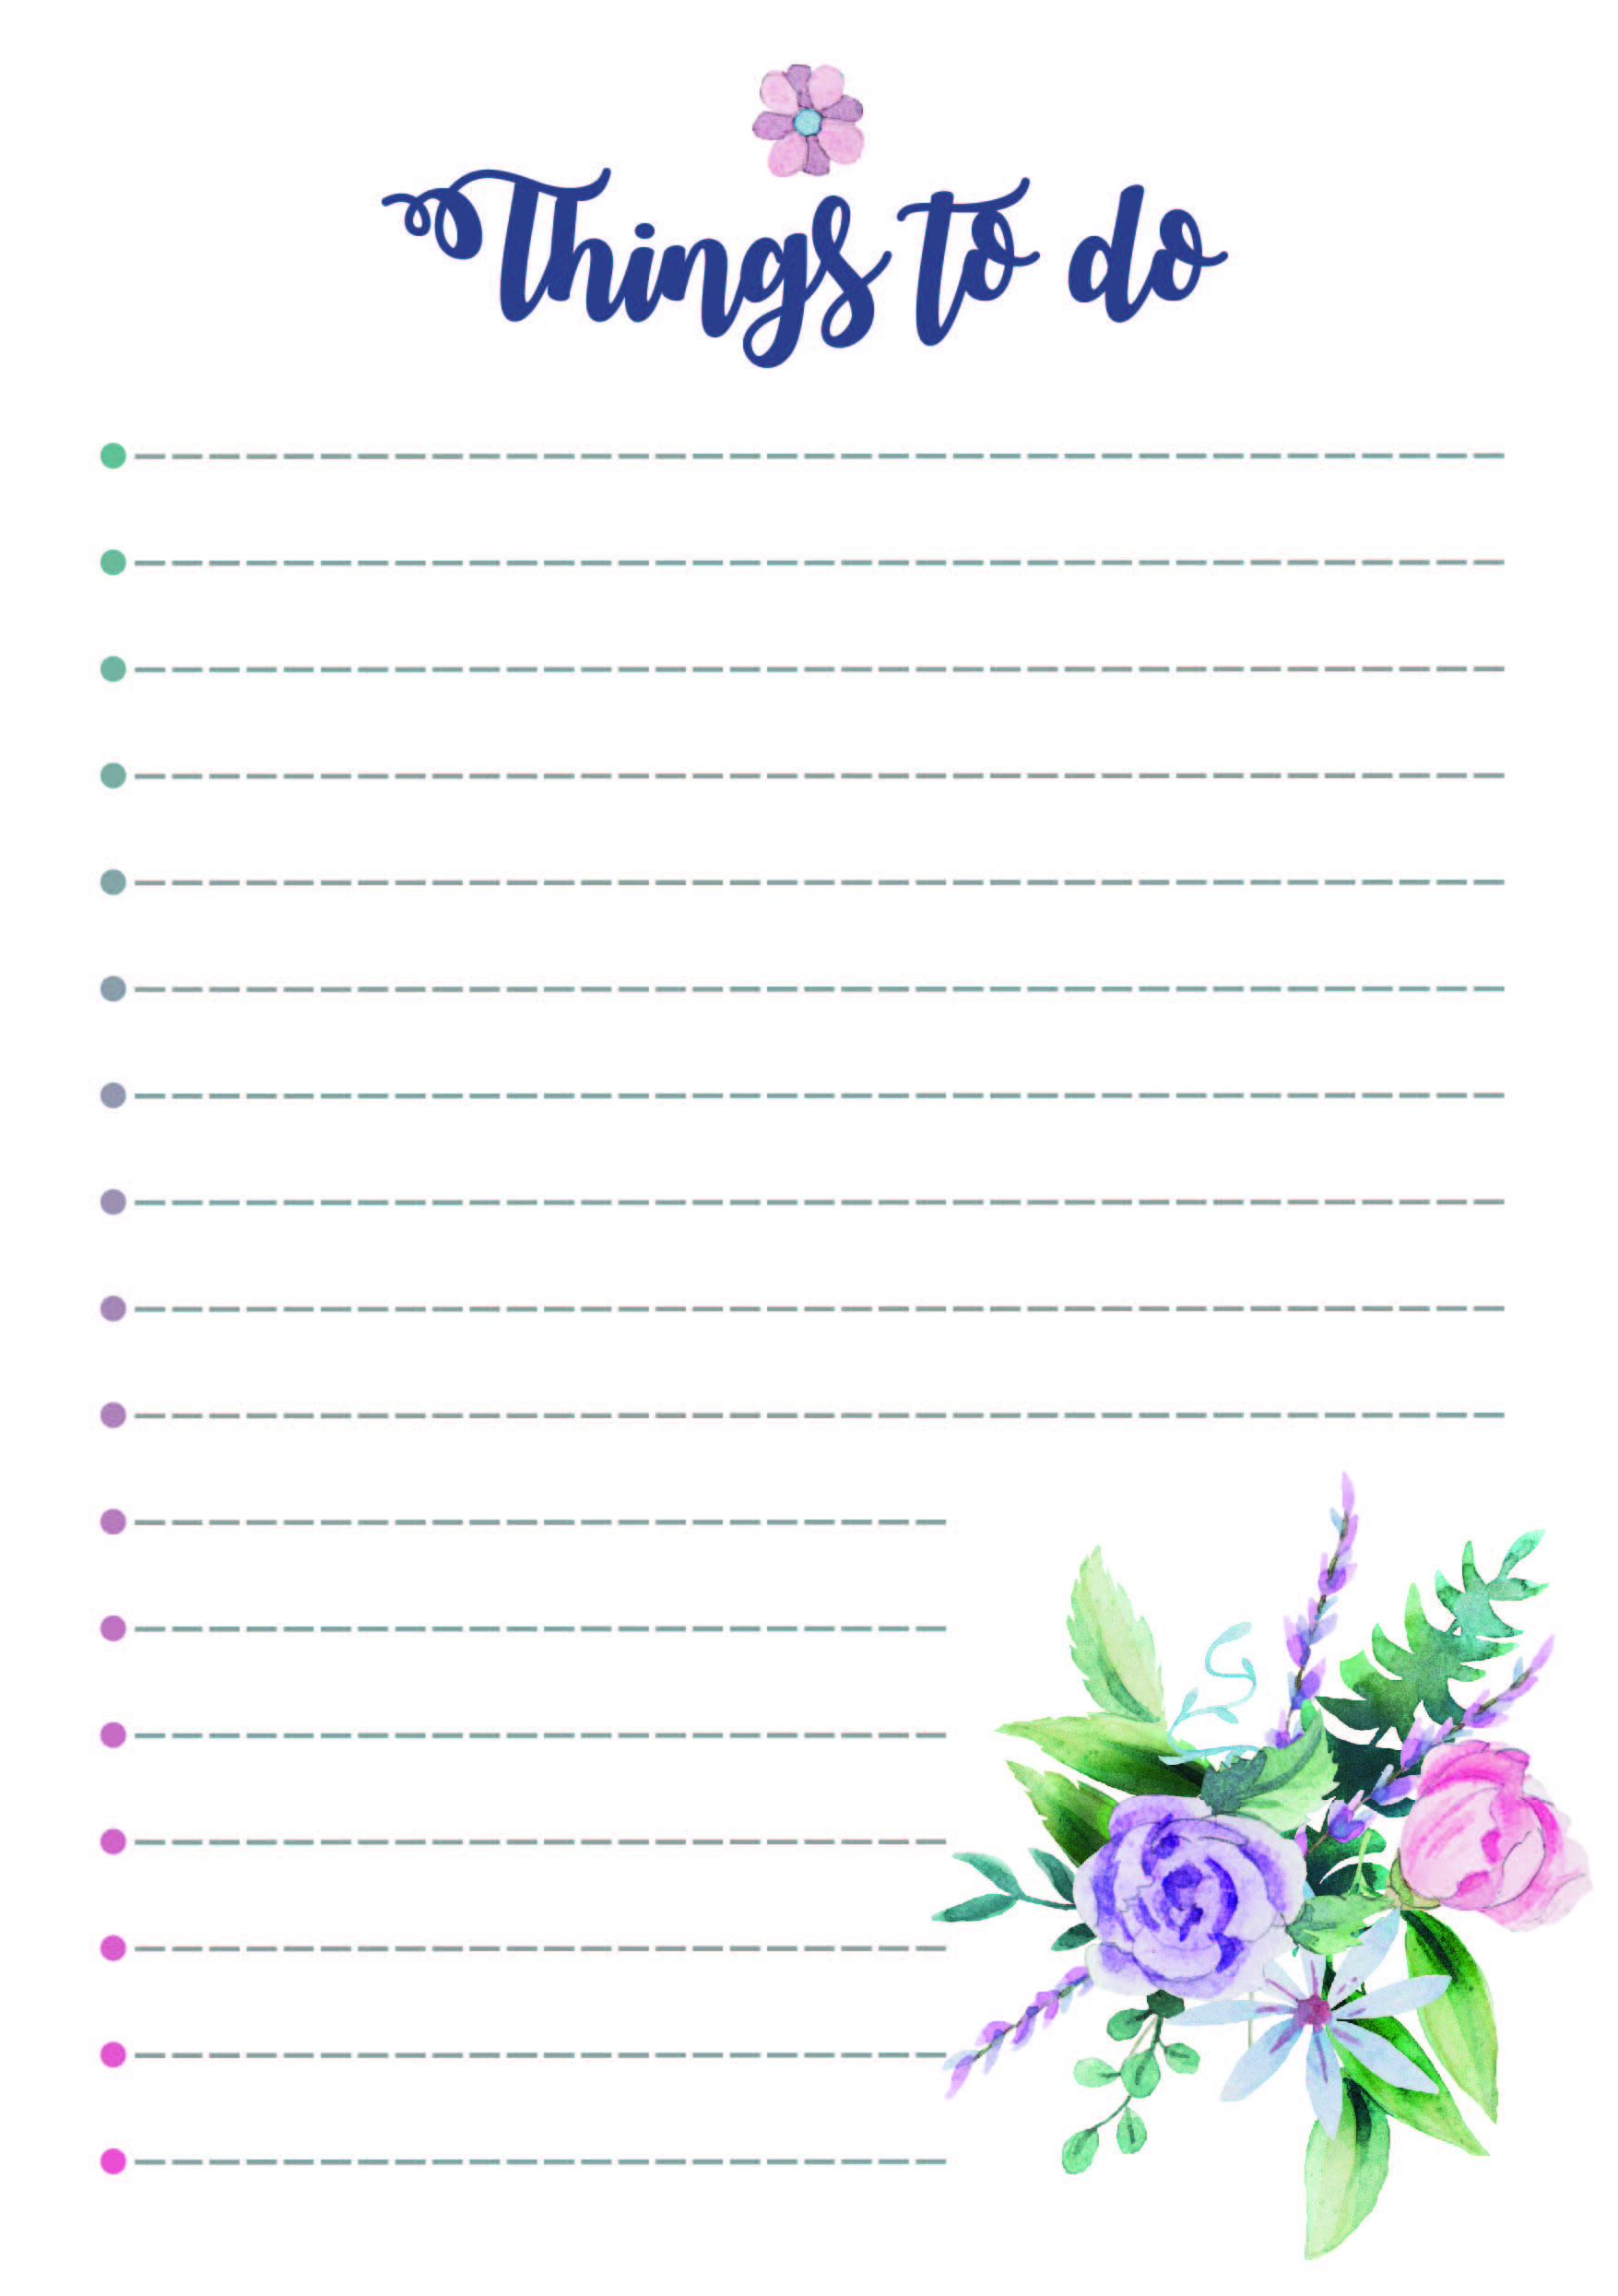 Free To Do List Printable From The Cactus Creative Things